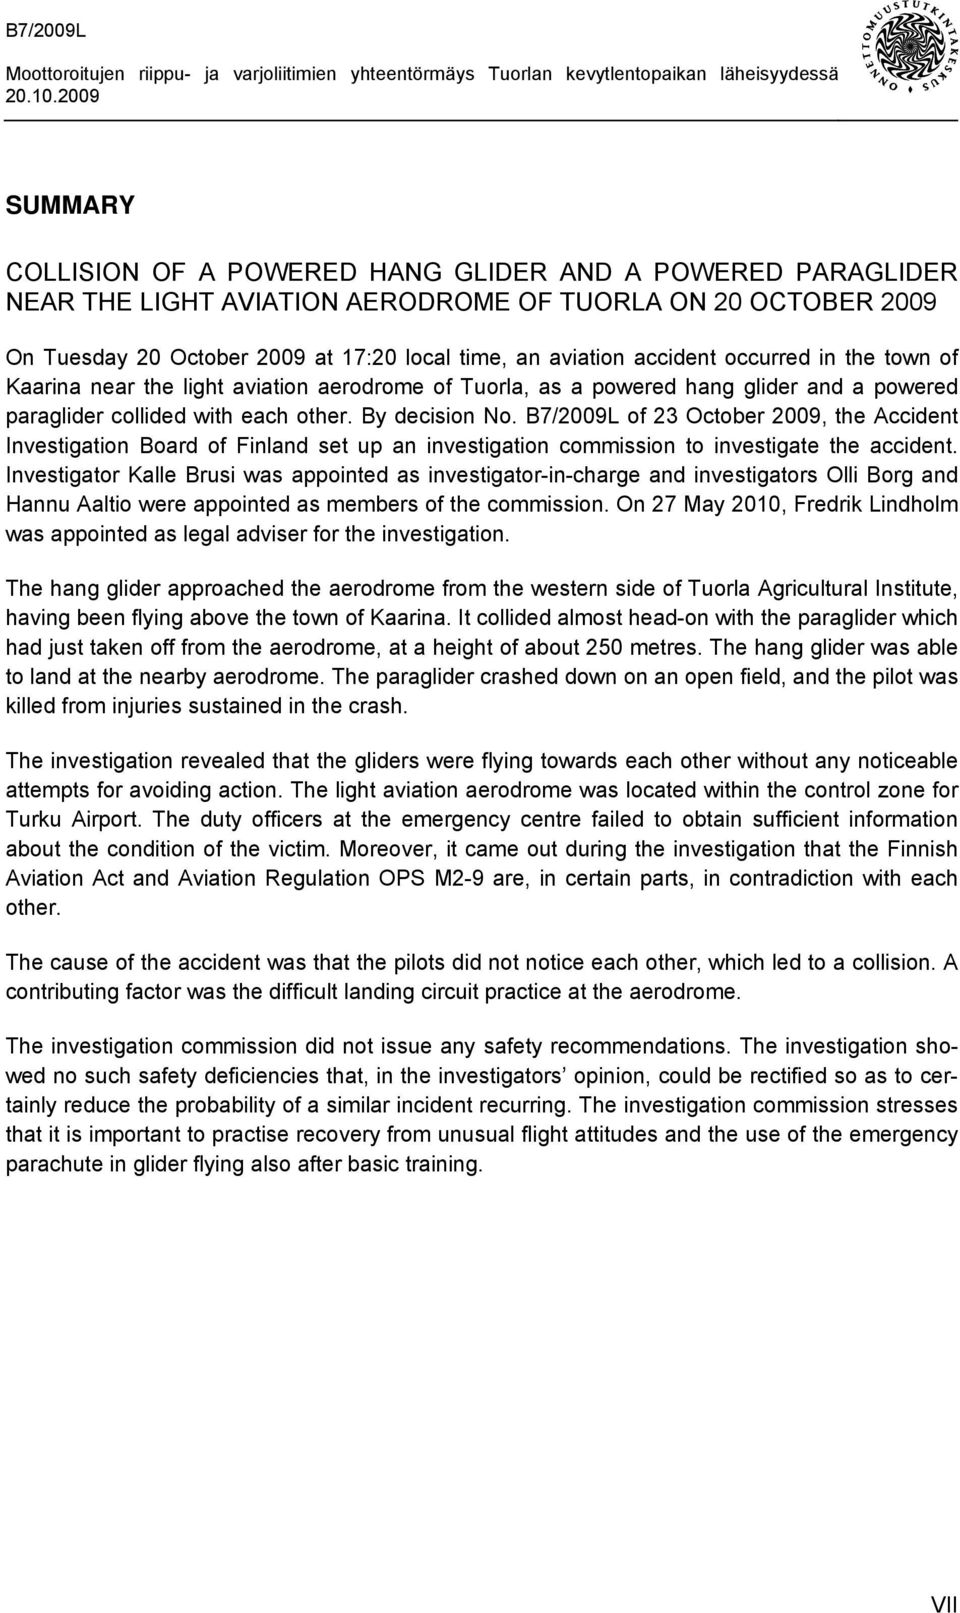 B7/2009L of 23 October 2009, the Accident Investigation Board of Finland set up an investigation commission to investigate the accident.